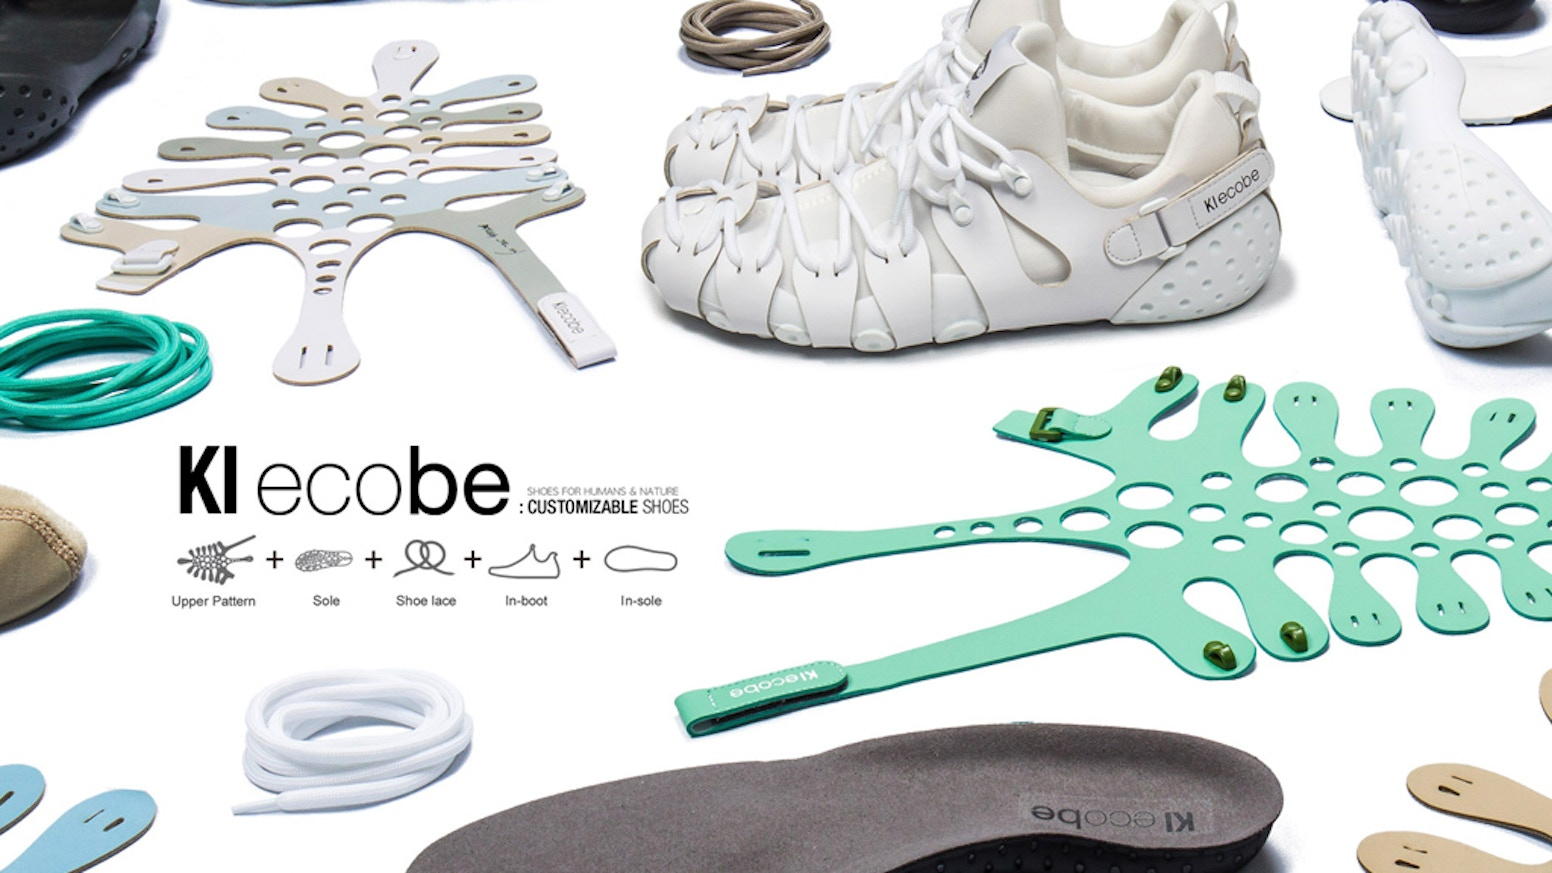 69371675a7bd Ultra customizable ultra colorful shoes that eliminate sweatshop labor with  genius modular design.